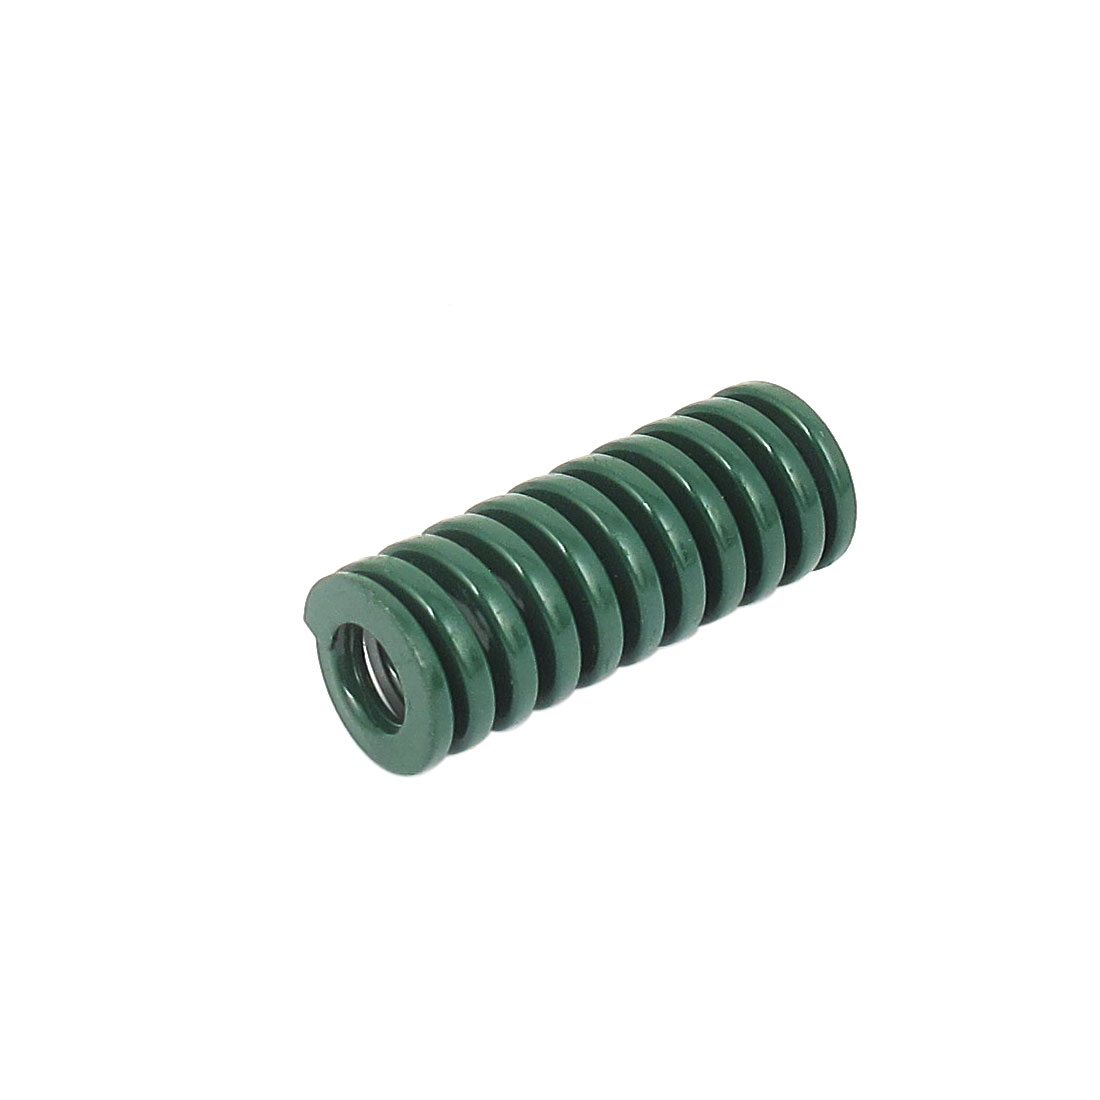 12mm OD 30mm Long Heavy Load Spiral Stamping Compression Die Spring Green